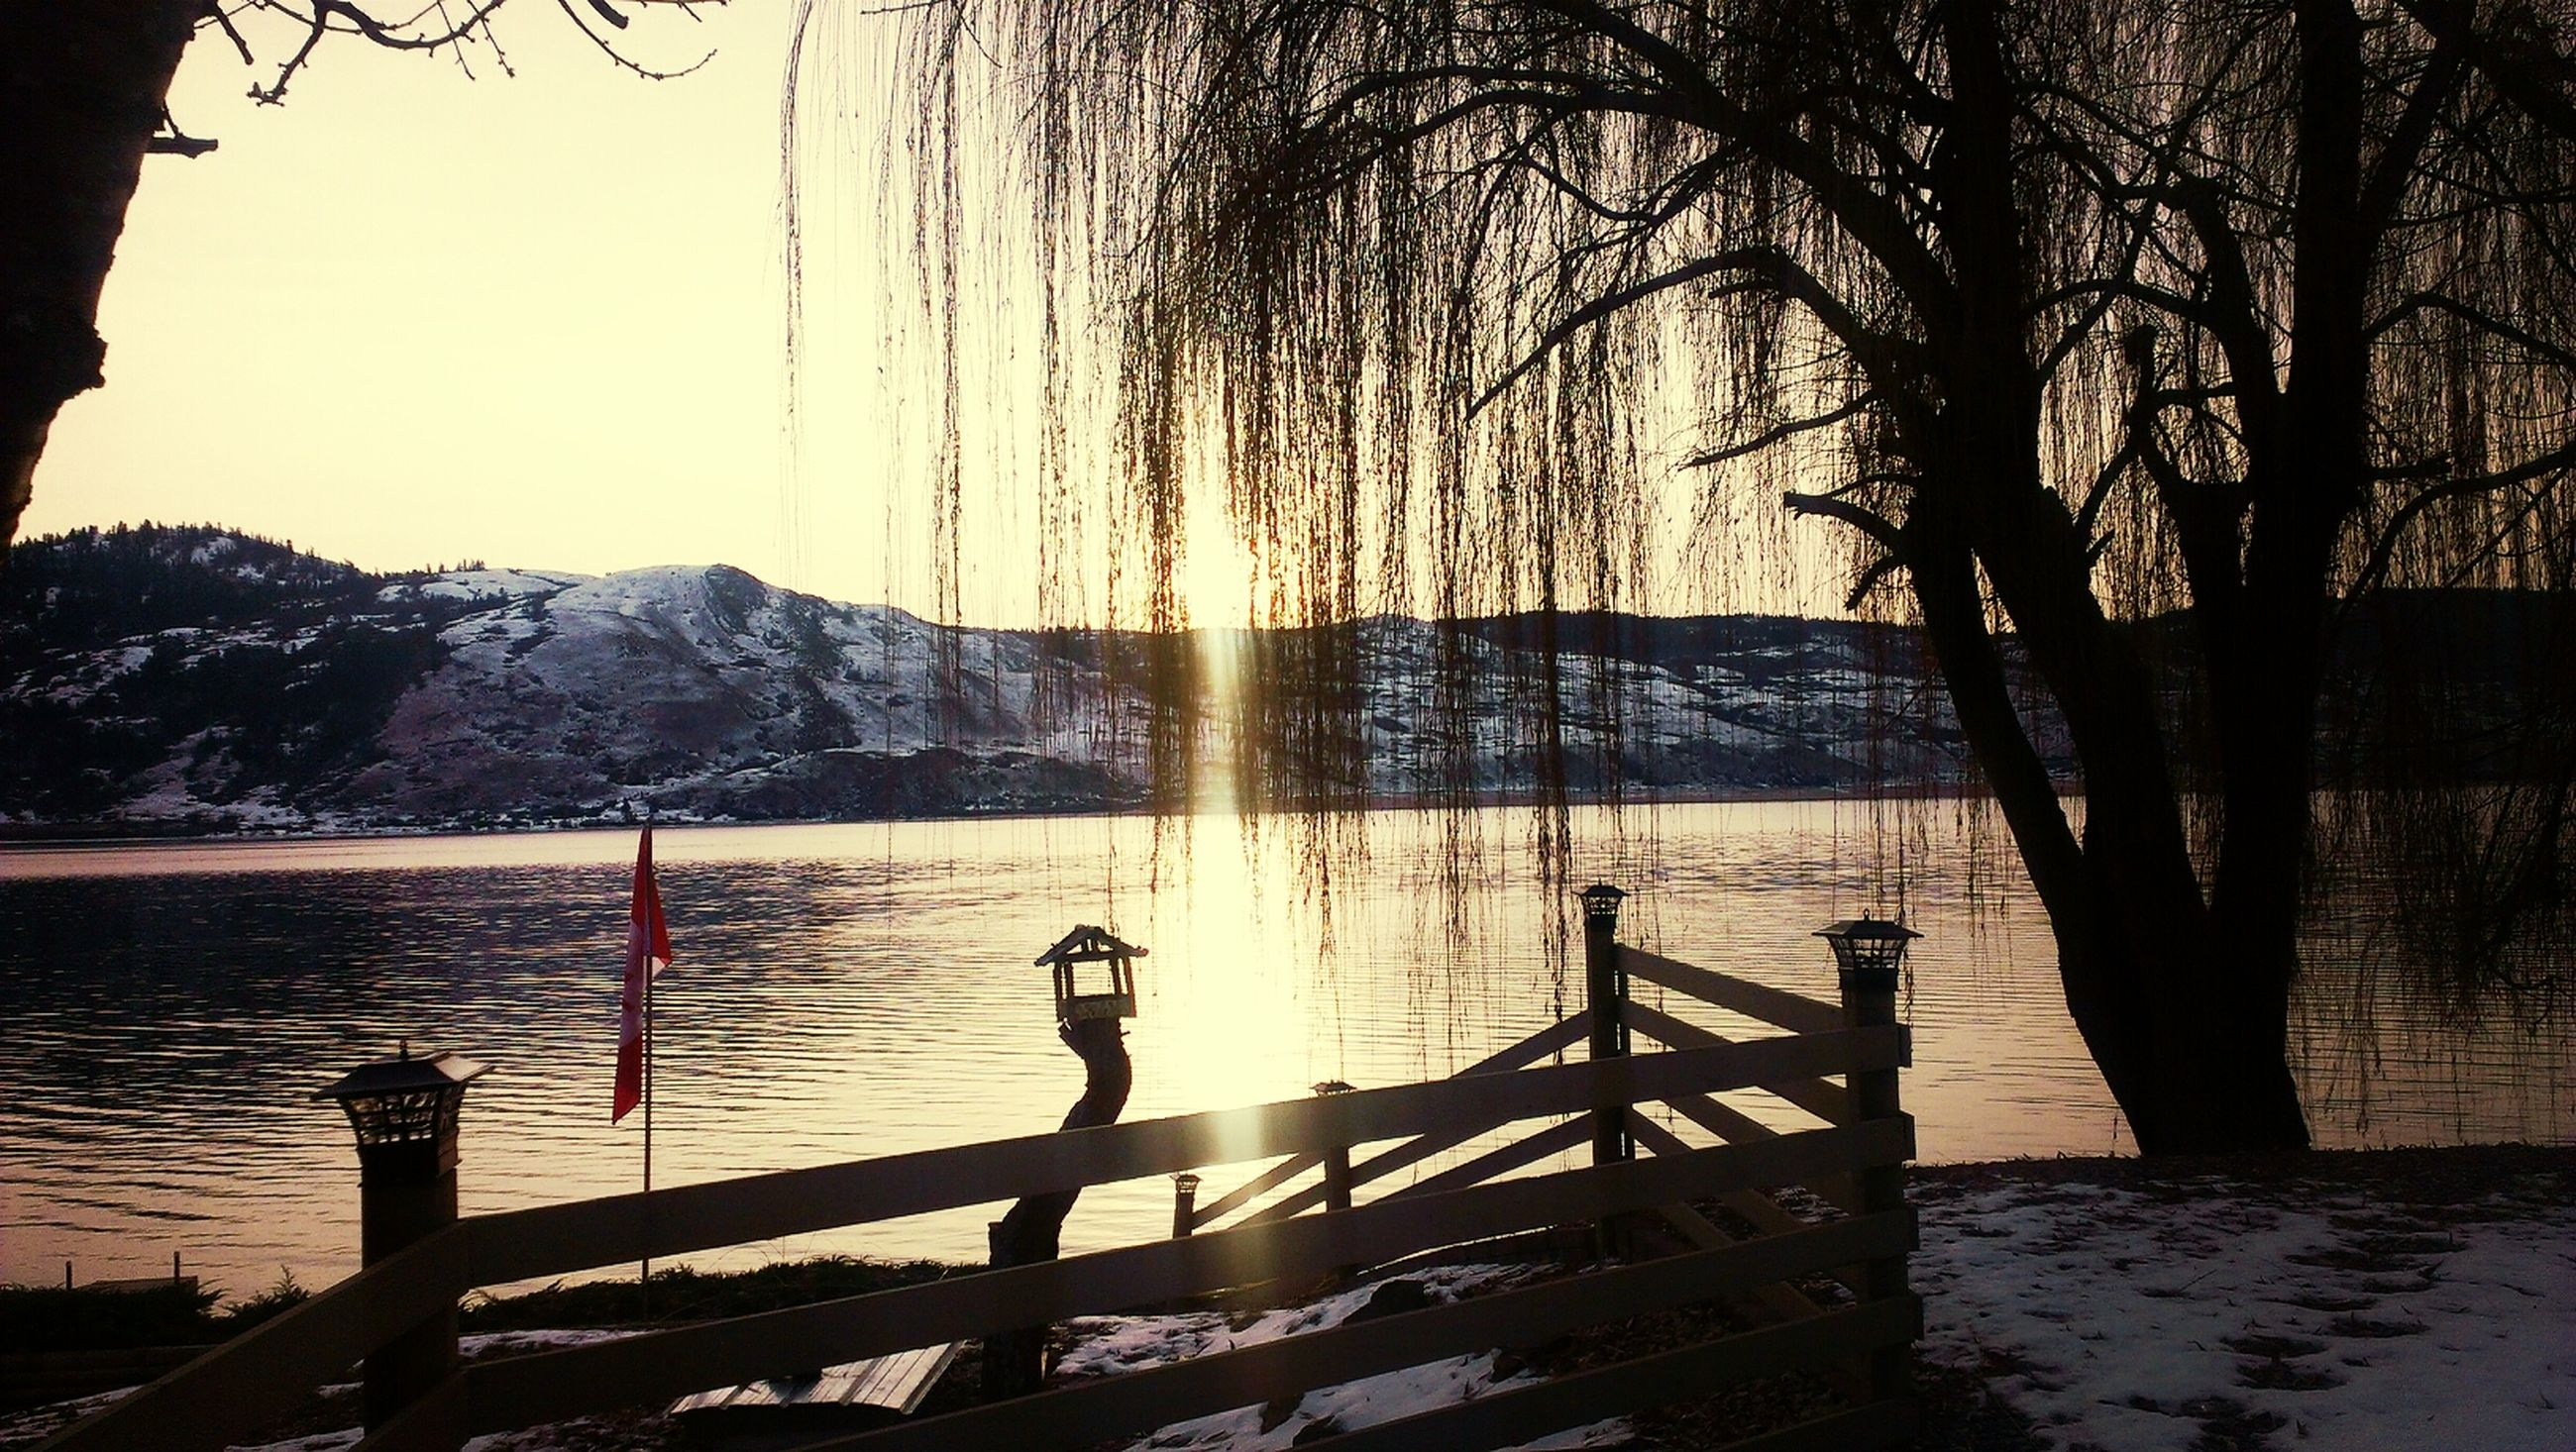 water, lake, tranquil scene, tranquility, bare tree, scenics, beauty in nature, mountain, snow, nature, winter, tree, sky, branch, cold temperature, silhouette, bird, sunset, railing, idyllic